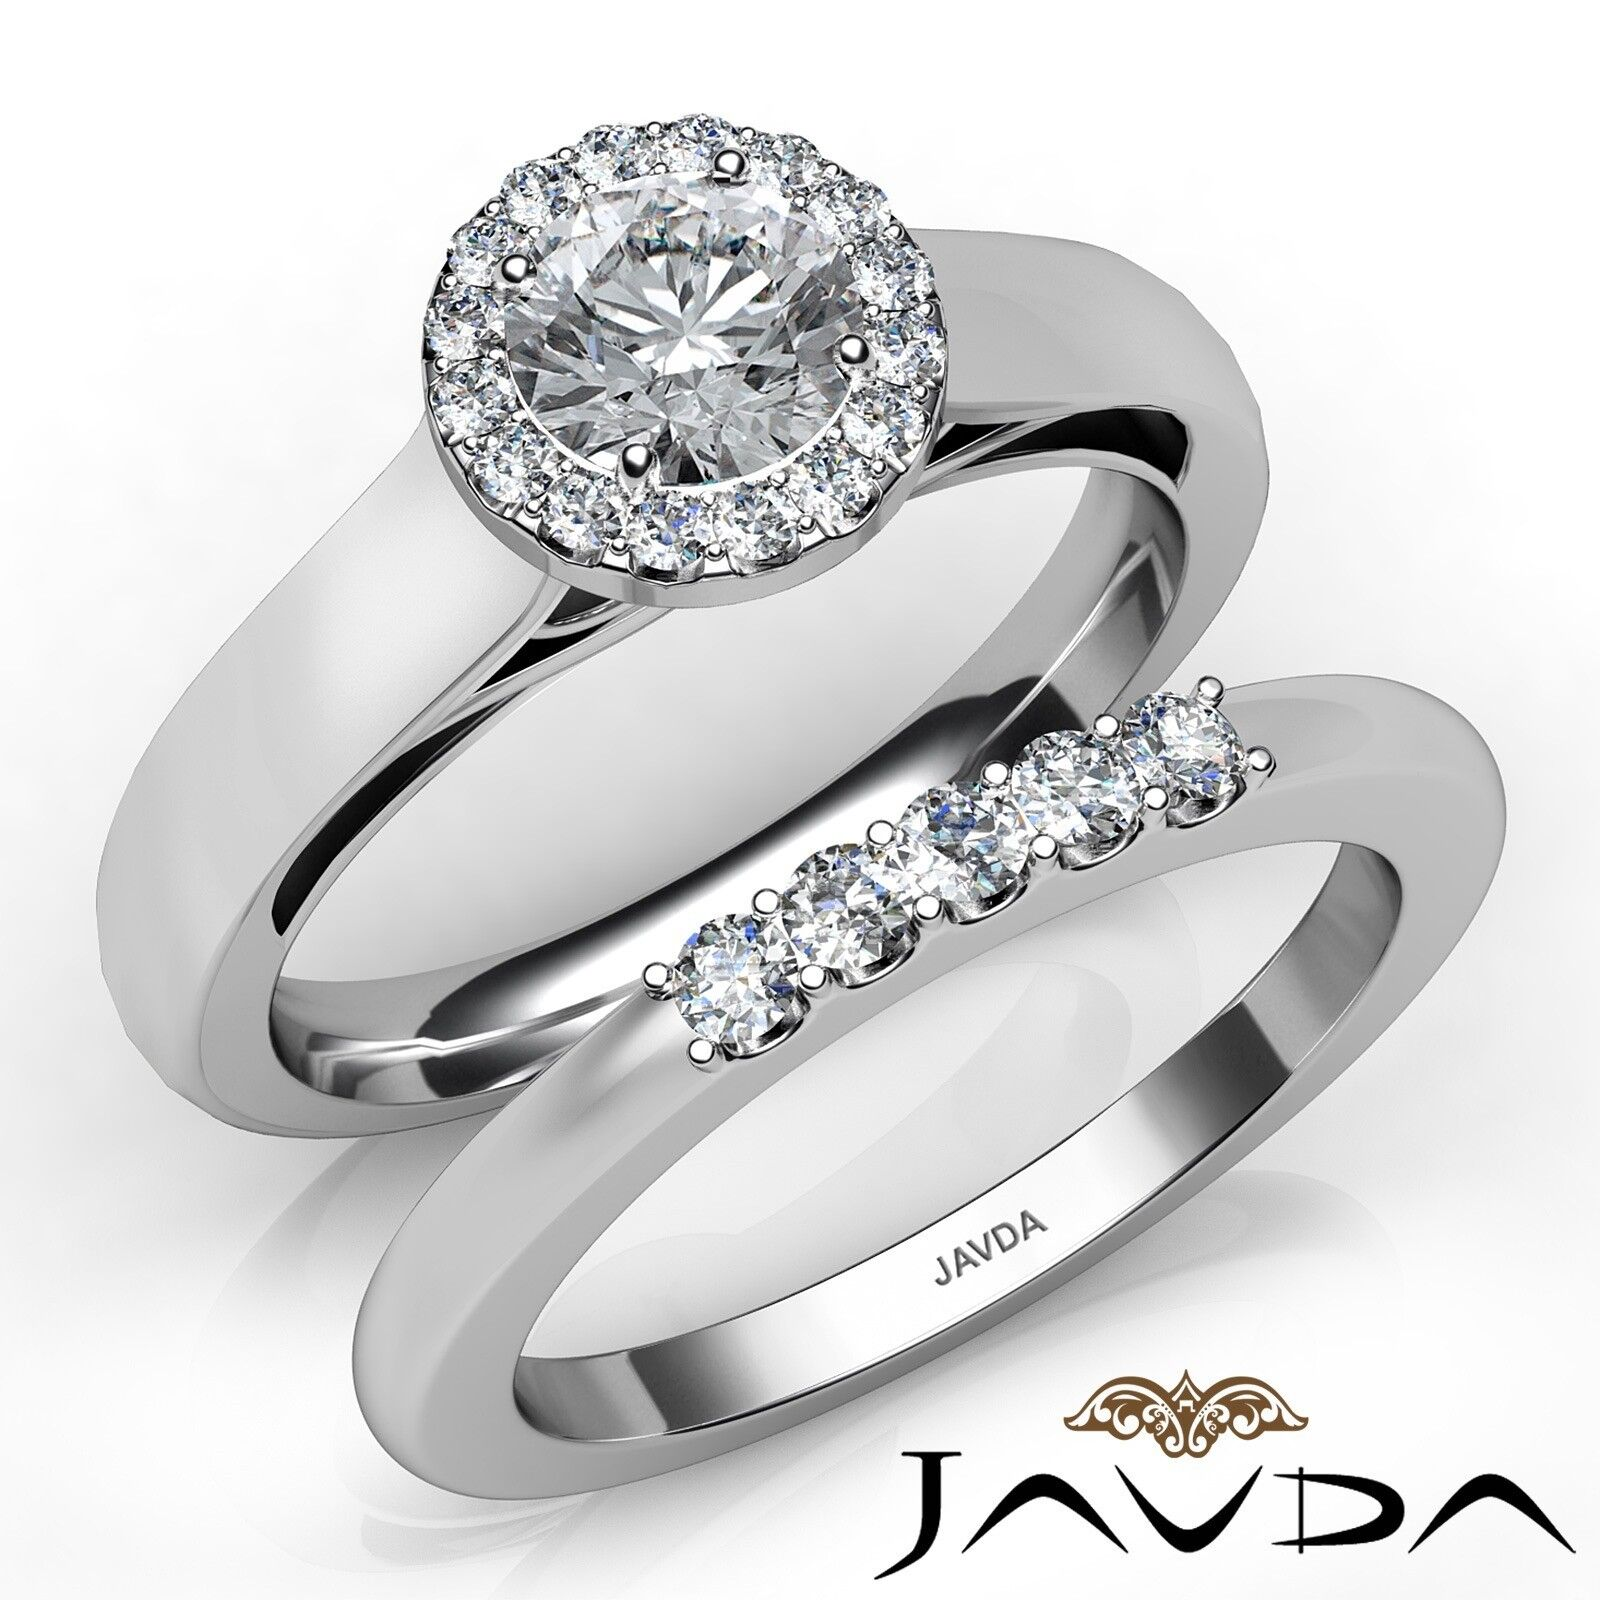 0.9ctw U Prong Halo Bridal Round Diamond Engagement Ring GIA H-VVS2 White Gold